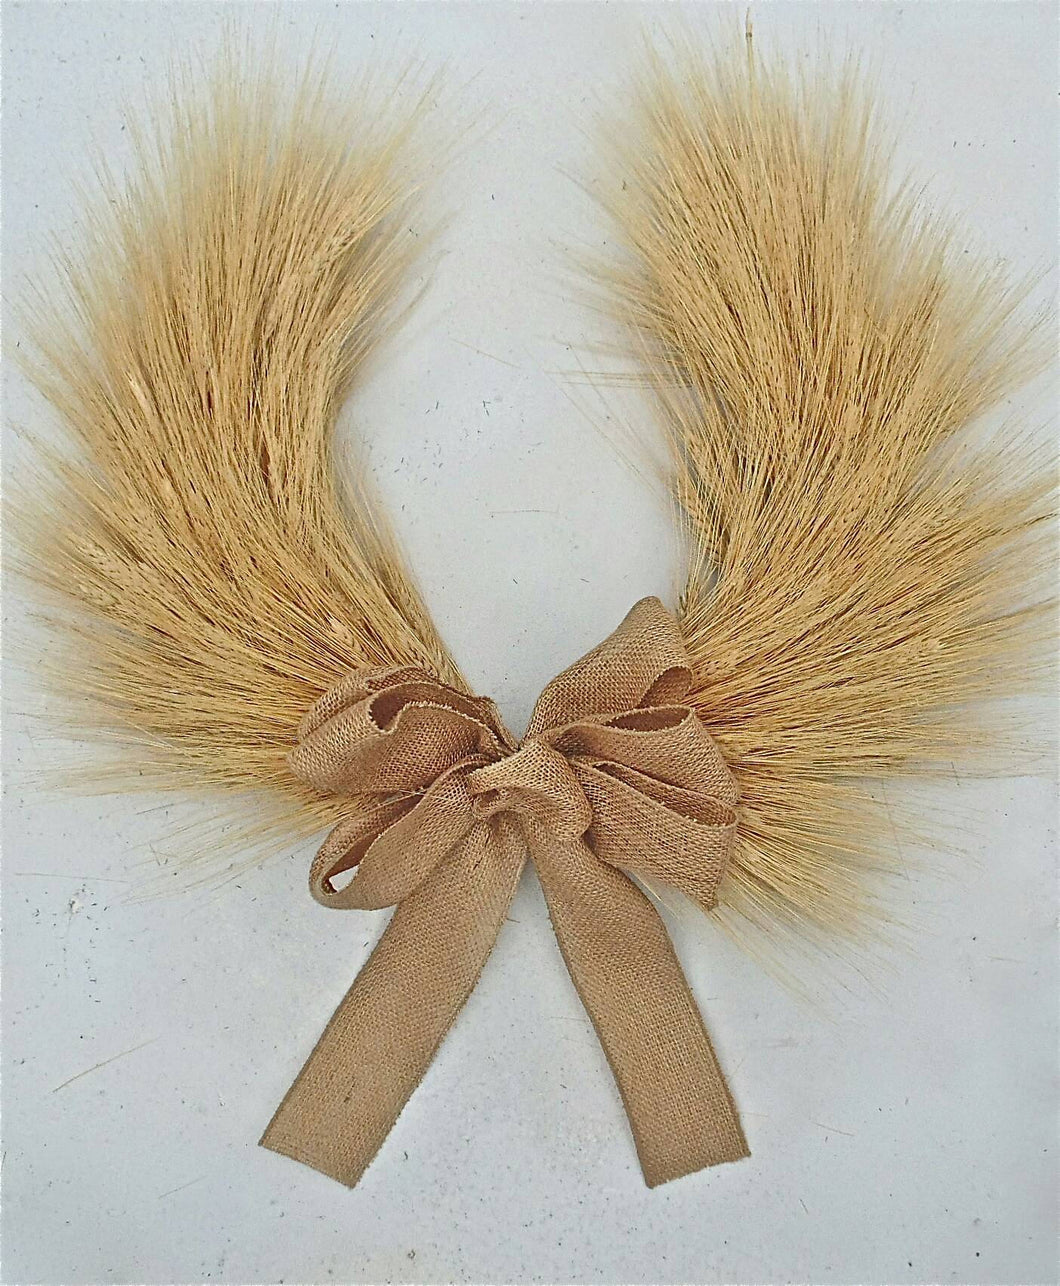 Thanksgiving and Christmas Blond Wheat Chevron Autumn Fall Wreath - country front door indoor wheat wreath- Horse Shoe Wreath 22 Inch